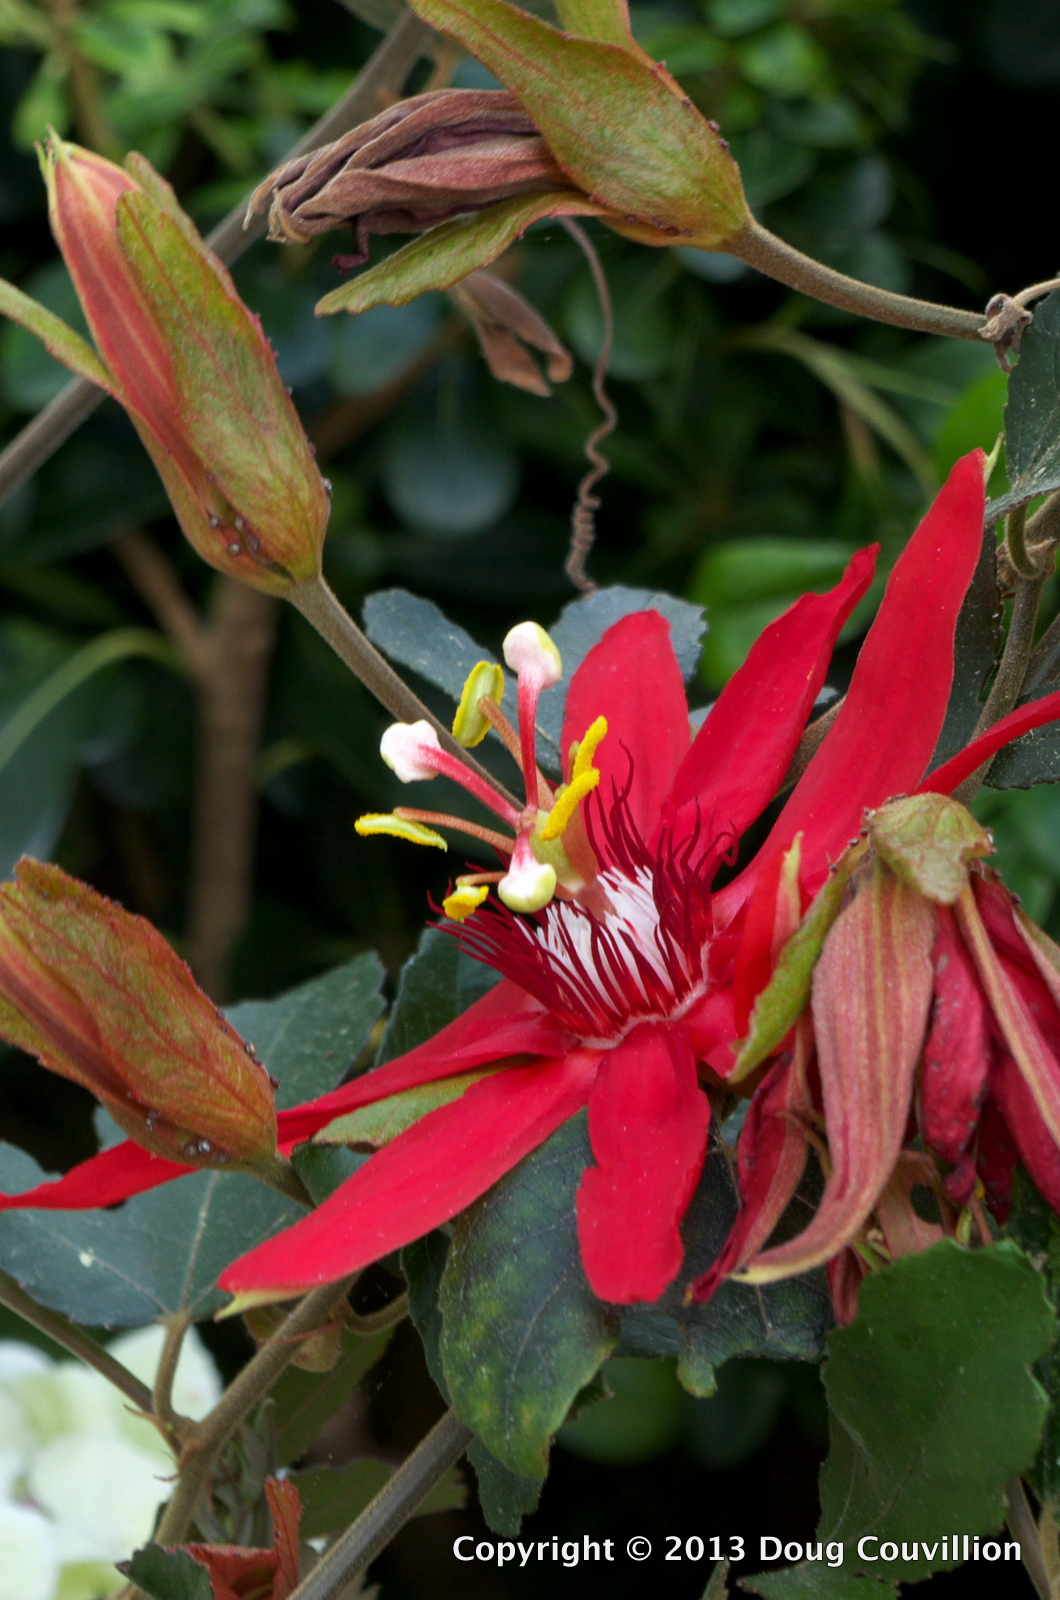 photograph of a large, red flower